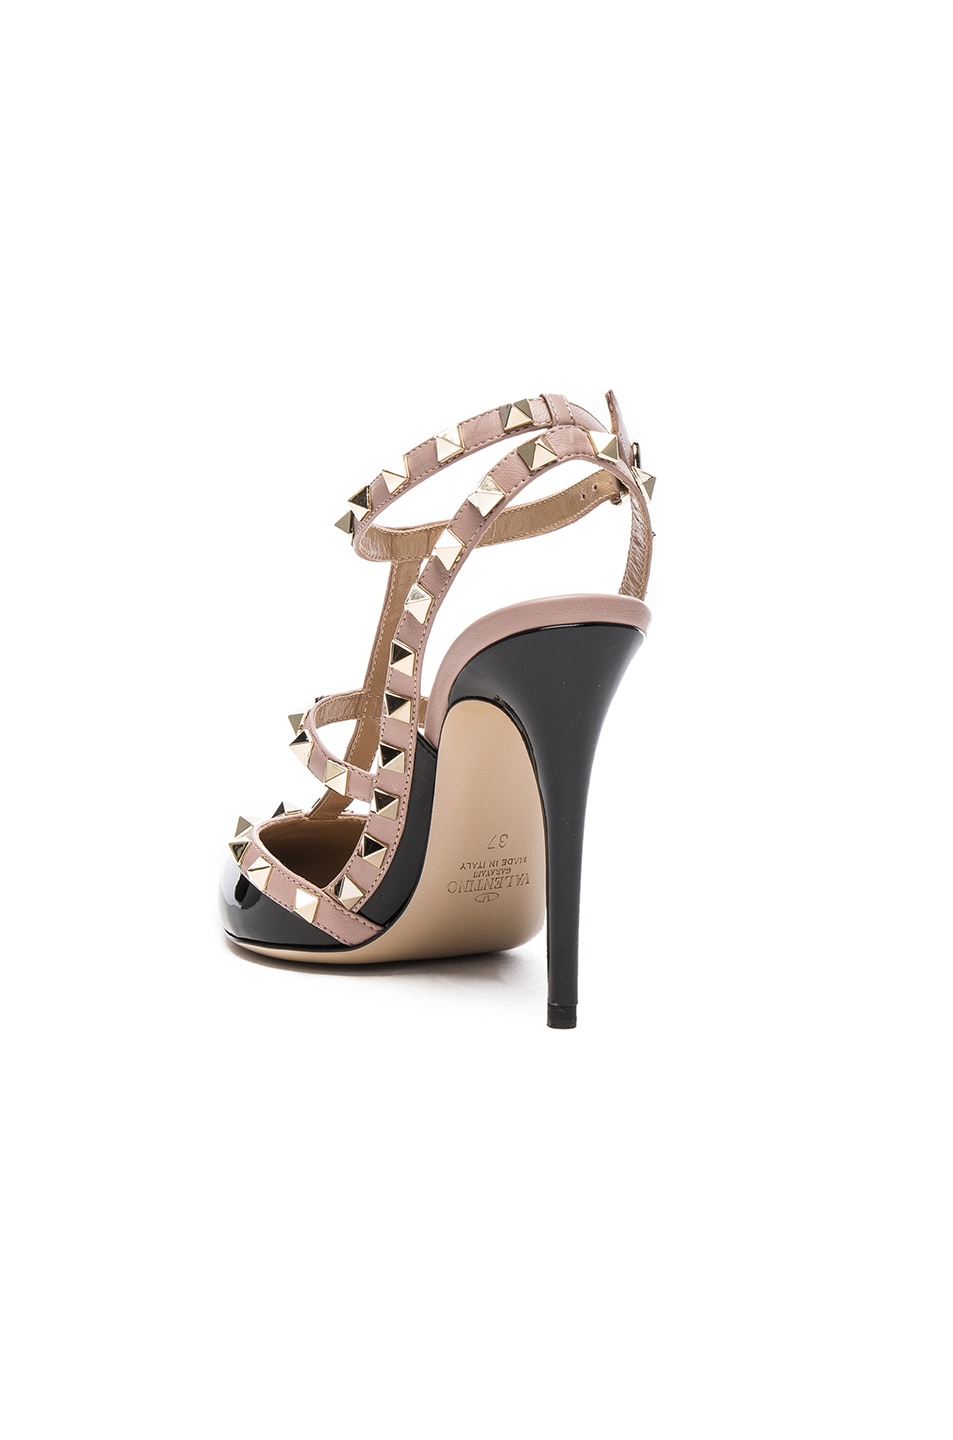 Image 3 of Valentino Rockstud Patent Leather Ankle Strap Heels in Black & Poudre